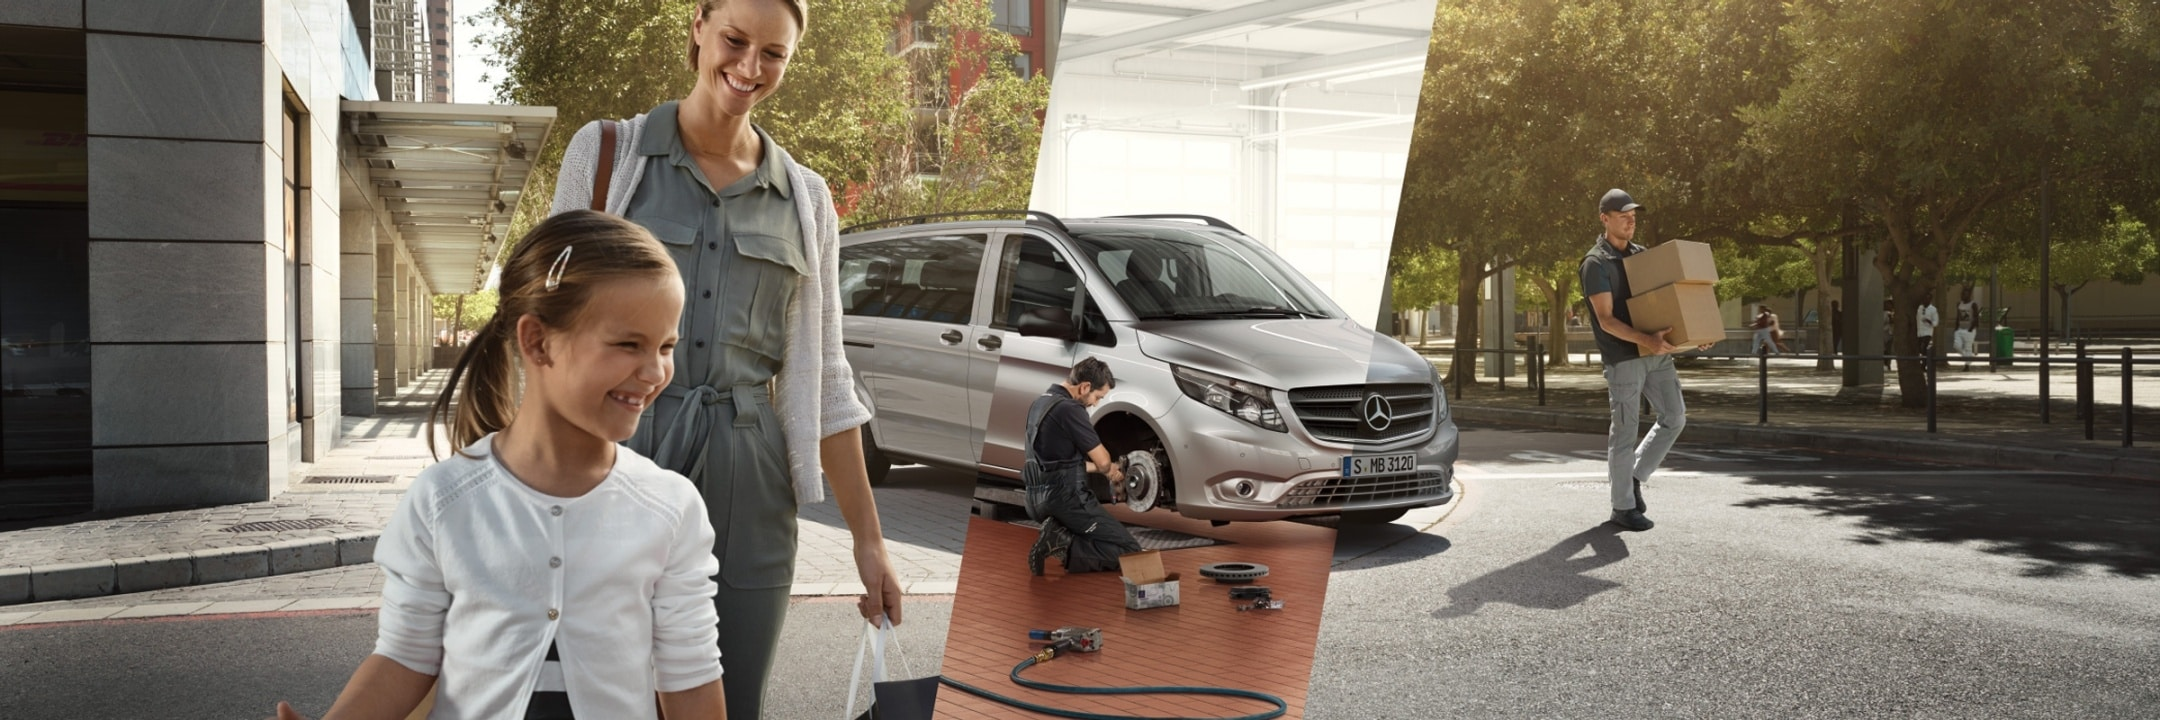 Mercedes-Benz Service and GenuineParts for your van.